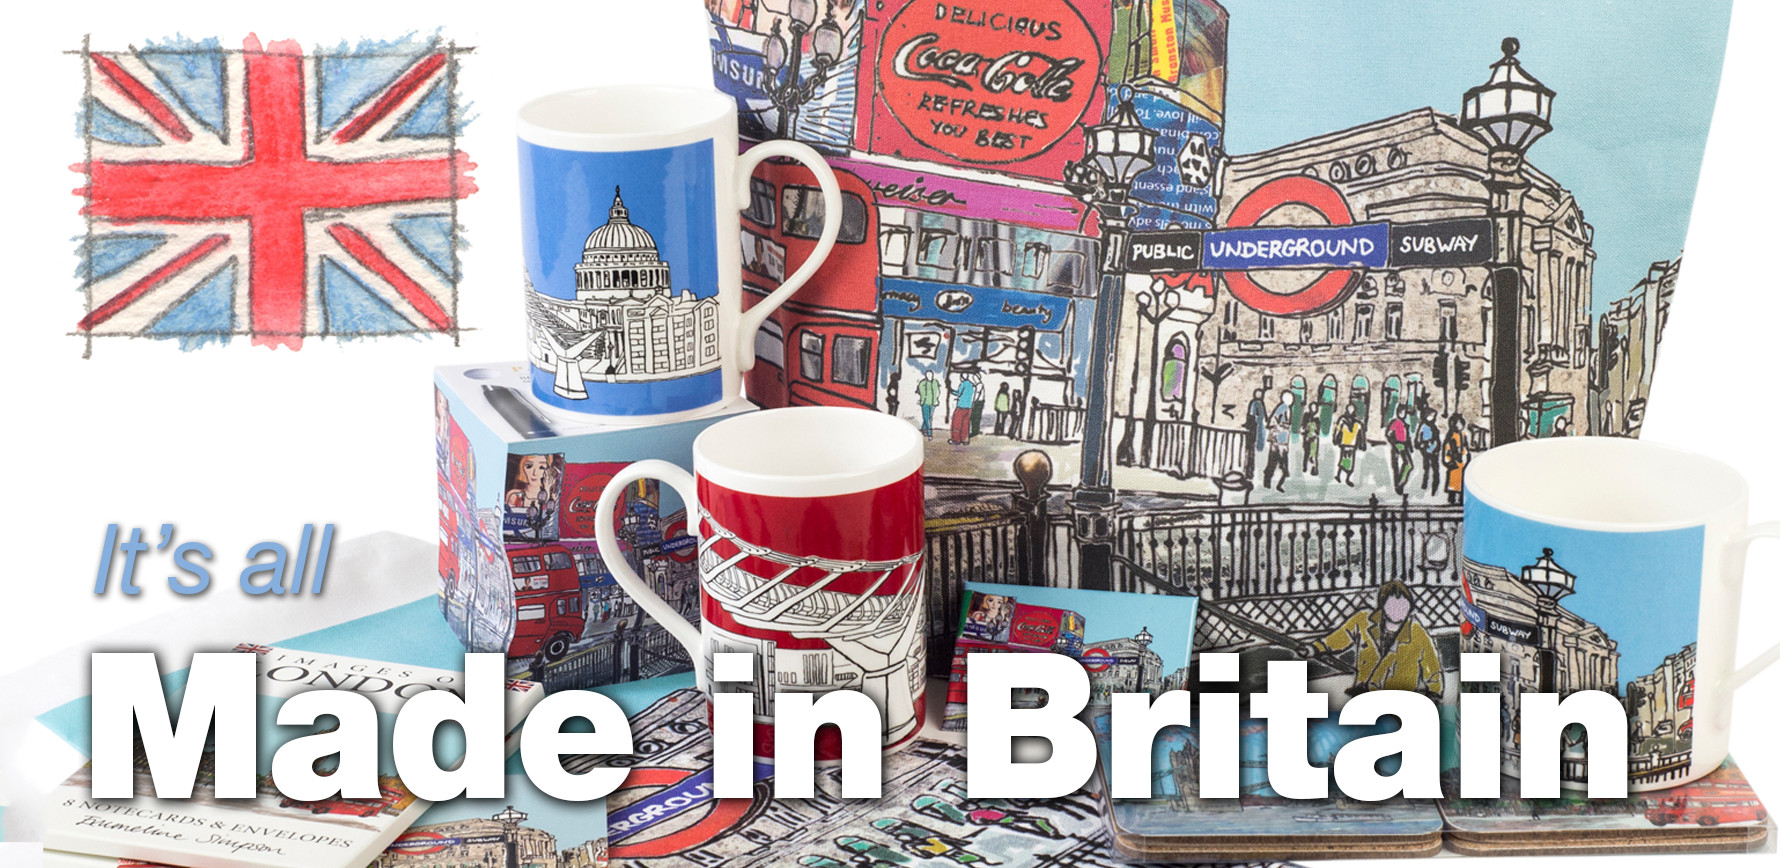 Everything made in Britain